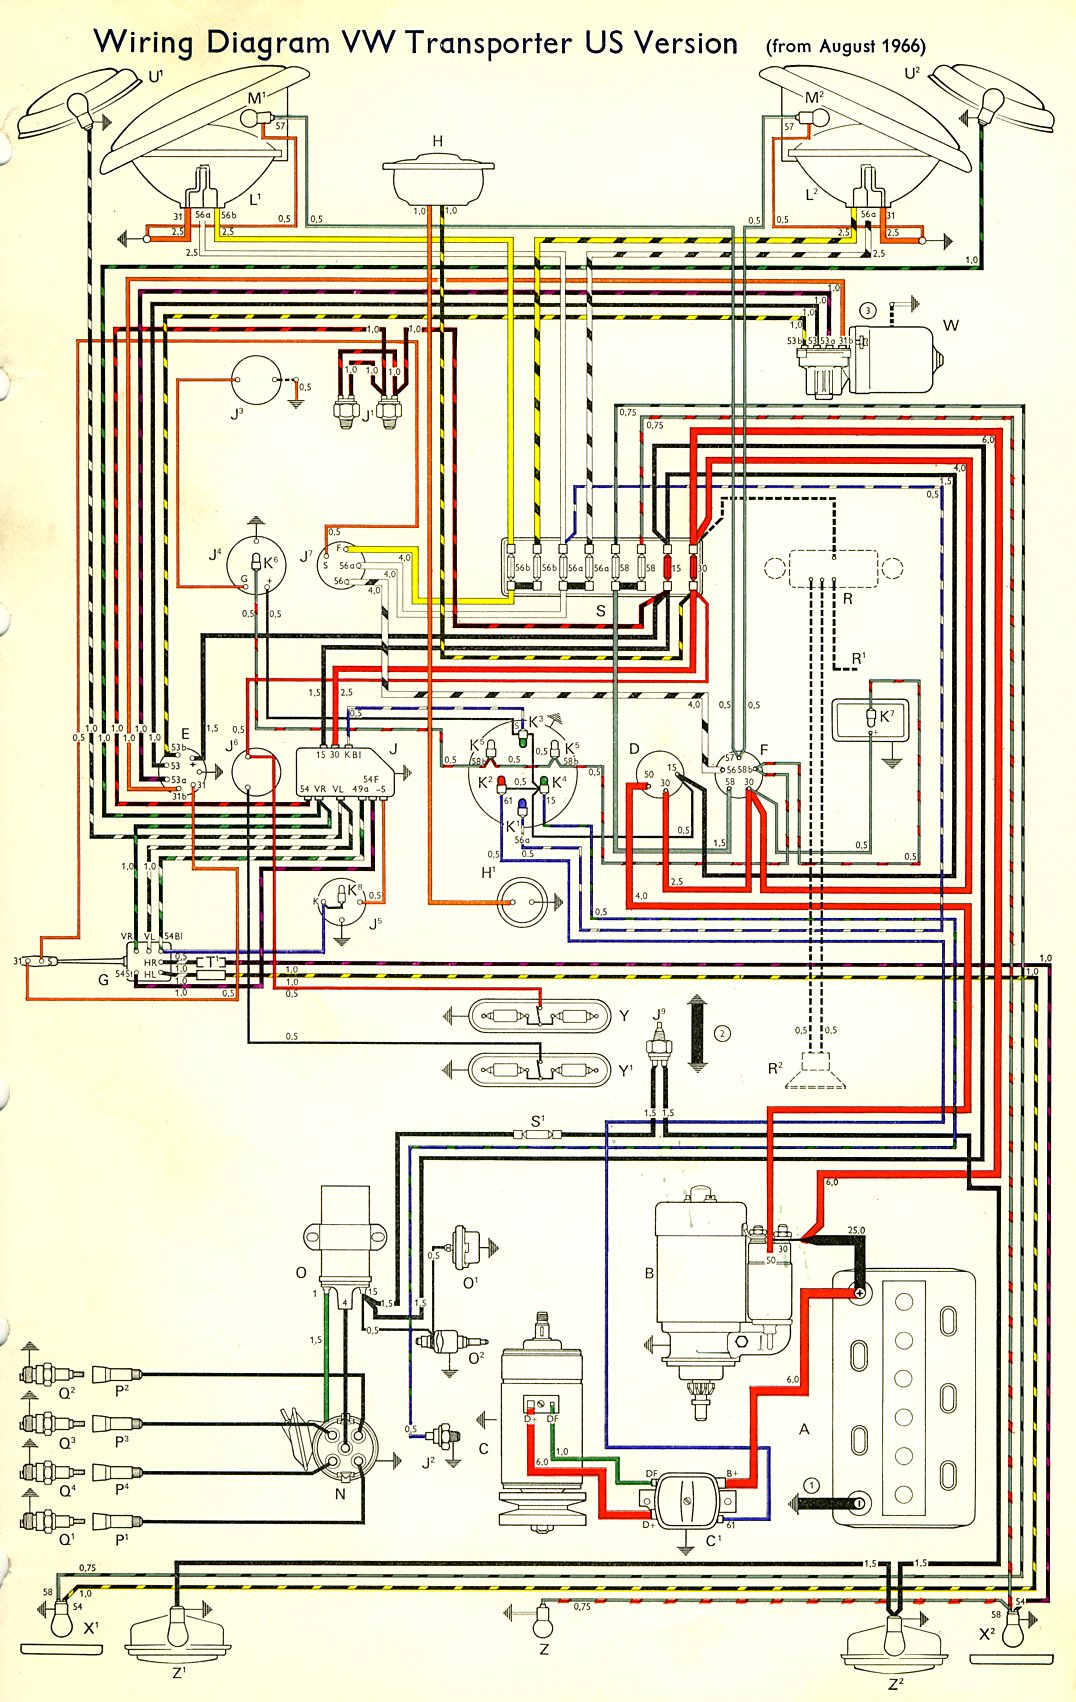 98 Jetta Fuse Diagram 1967 Bus Wiring Diagram Usa Thegoldenbug Com